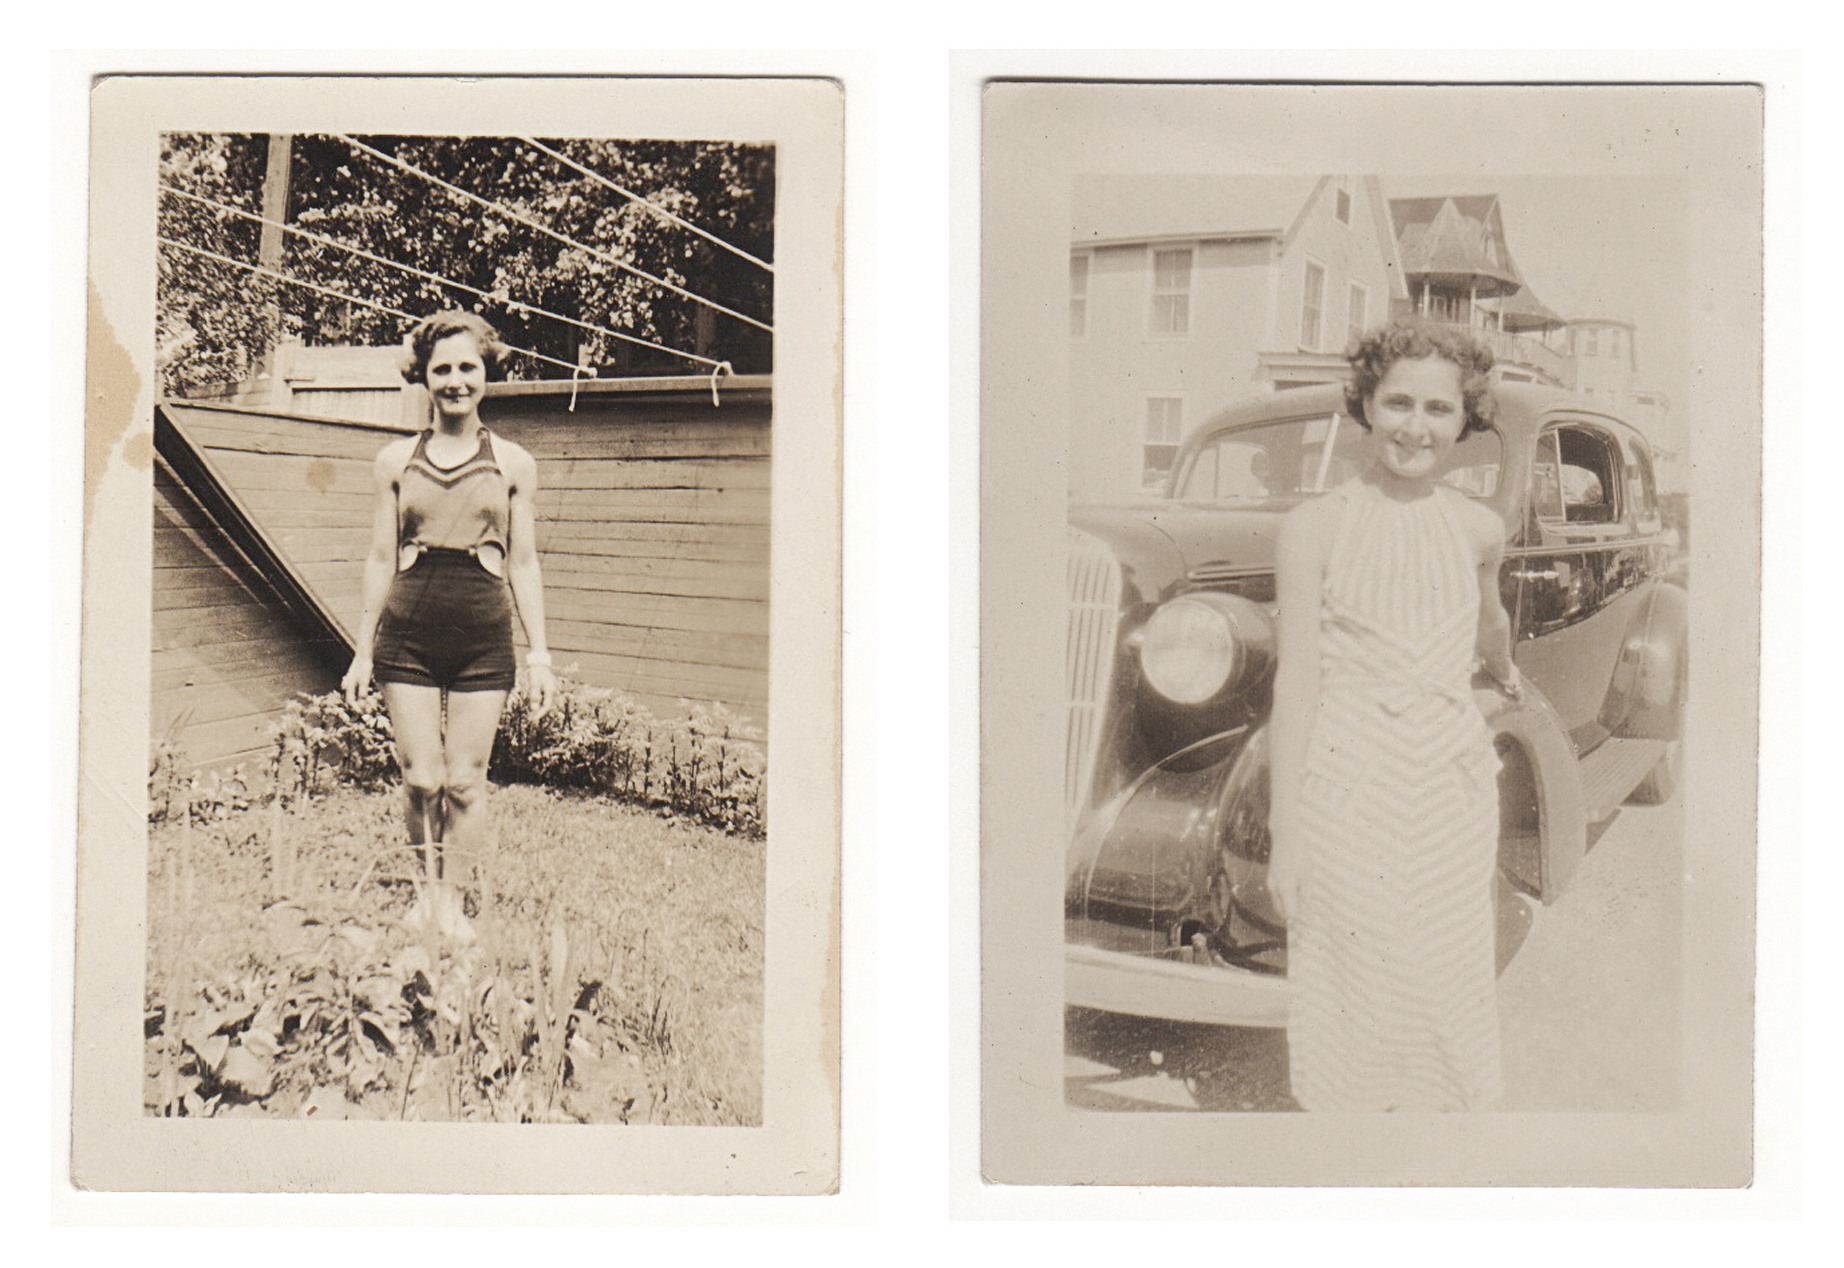 My nana / Ann Chiachetti / 1935 and 1936